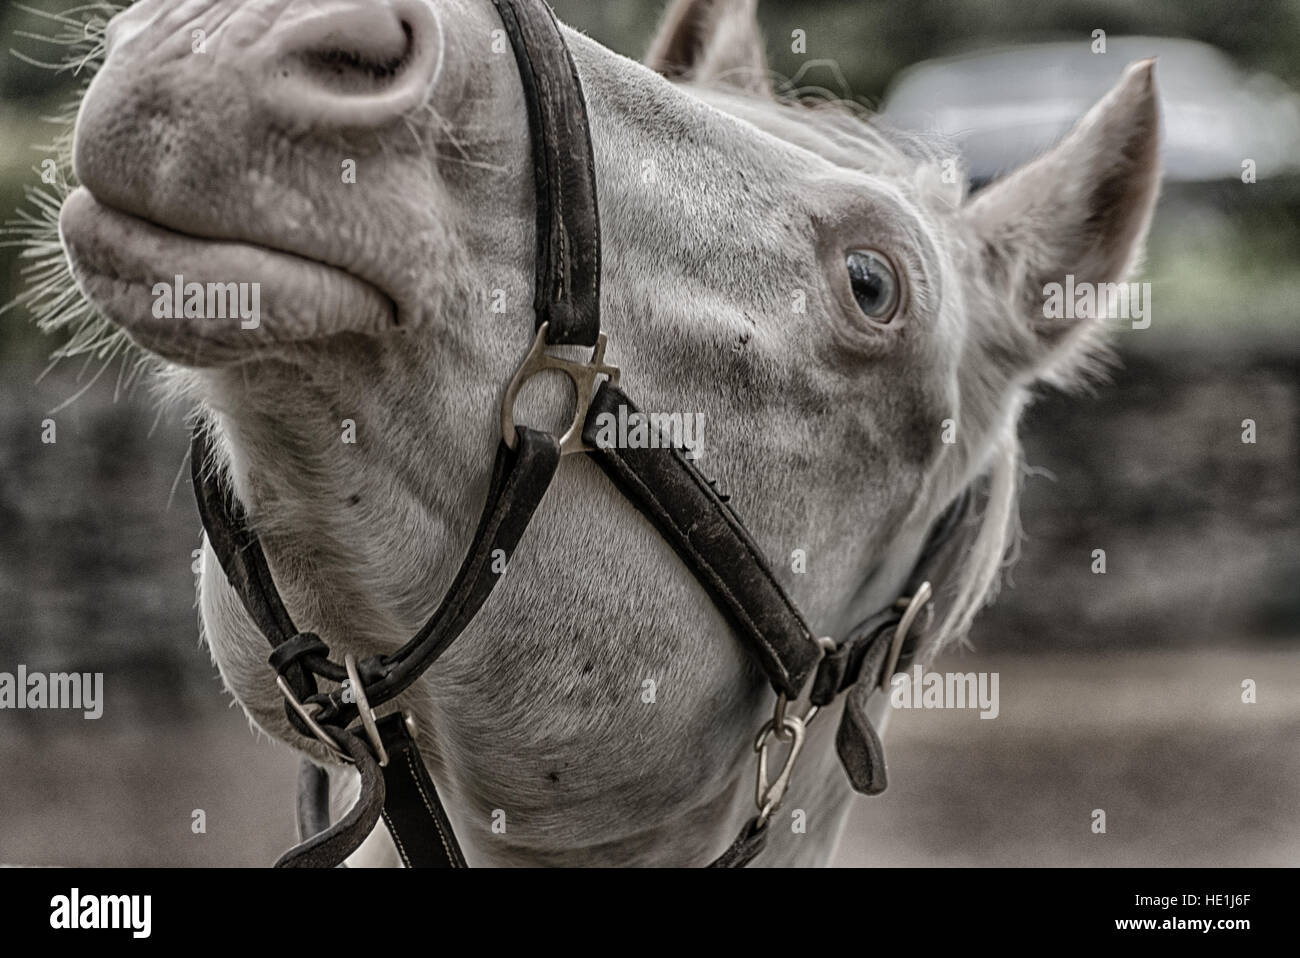 Funny expression on a tight shot of a gray horse. - Stock Image